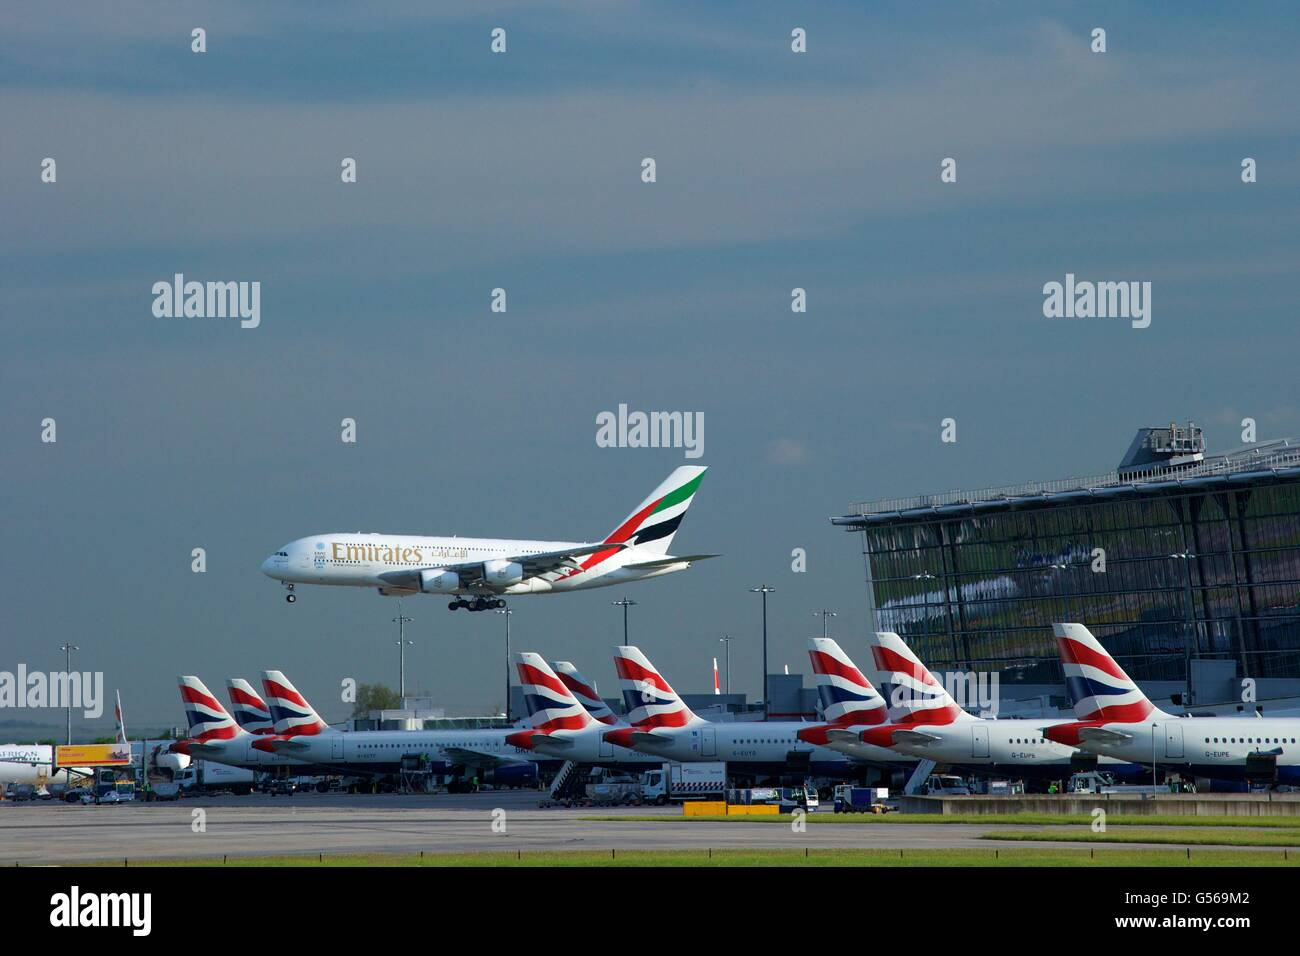 Emirates flight landing at Heathrow Airport with Terminal 5 behind, London, England, UK, GB, - Stock Image